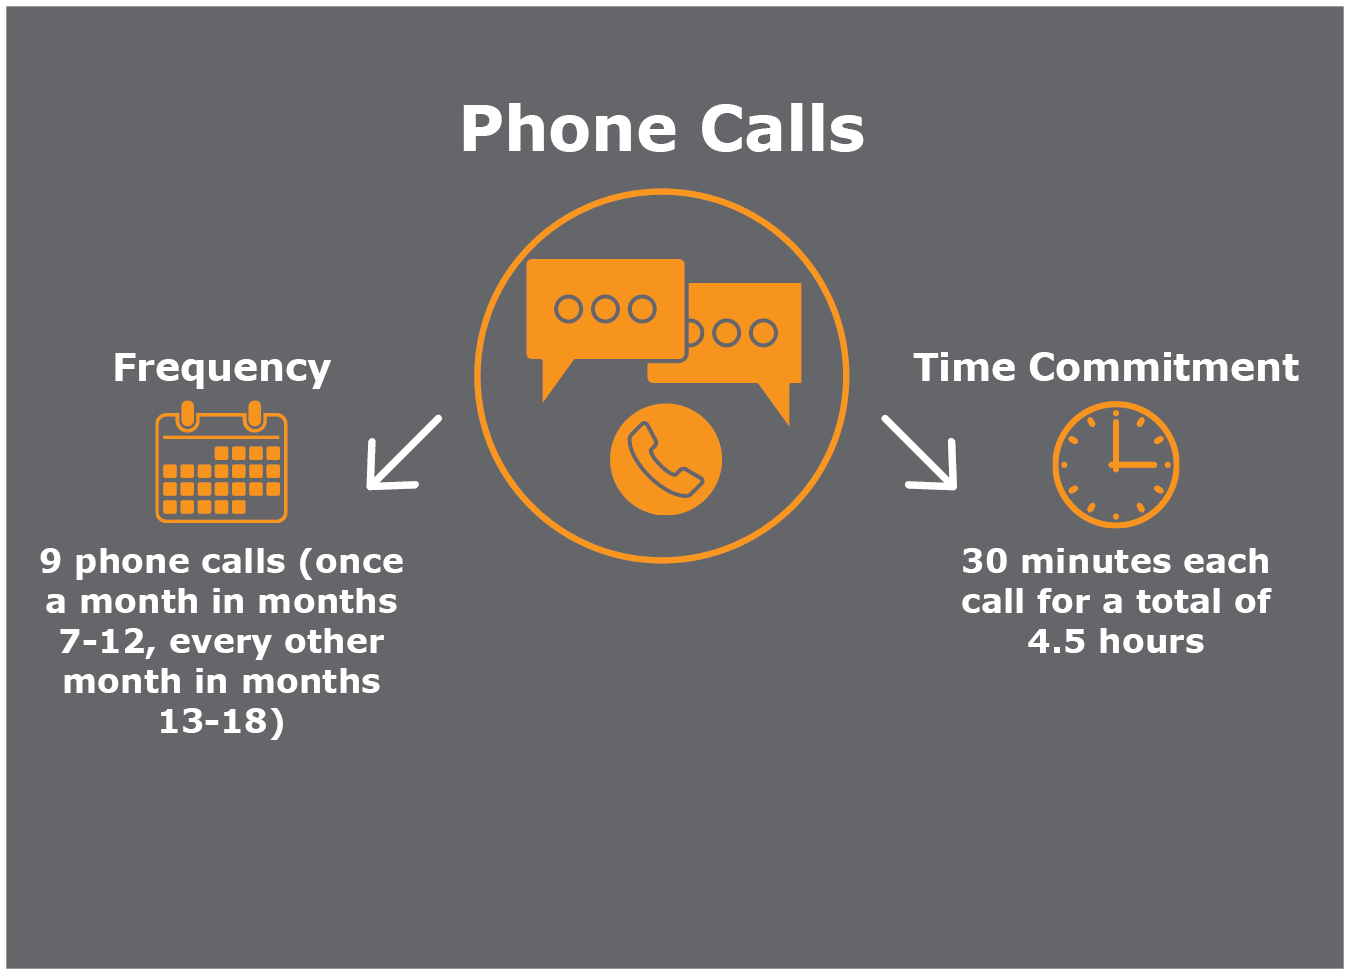 You will be expected to participate in 9 phone calls (once a month in months 7 through 12, and every other month, in months 13 through 18). Each call should last 30 minutes, for a total time commitment of 4.5 hours.